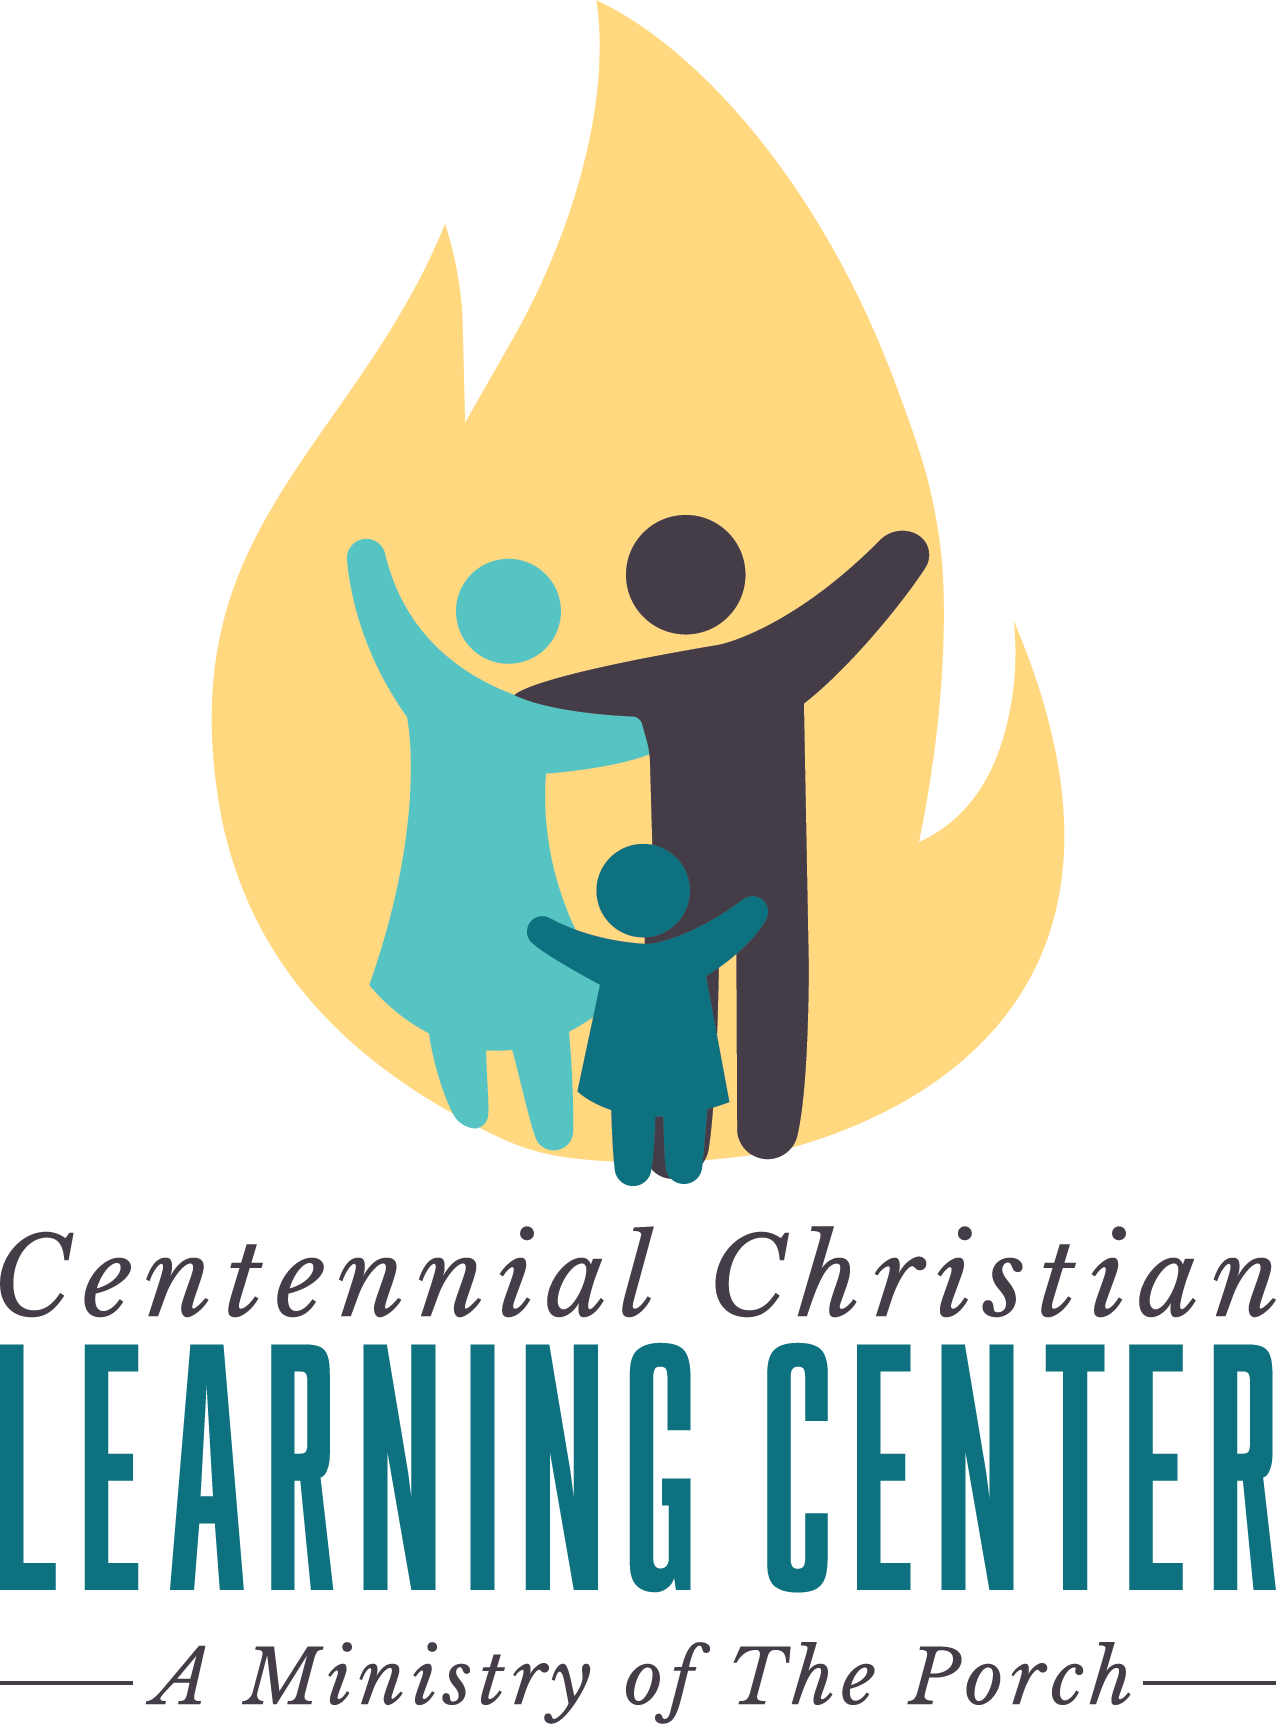 Centennial Christian Learning Center